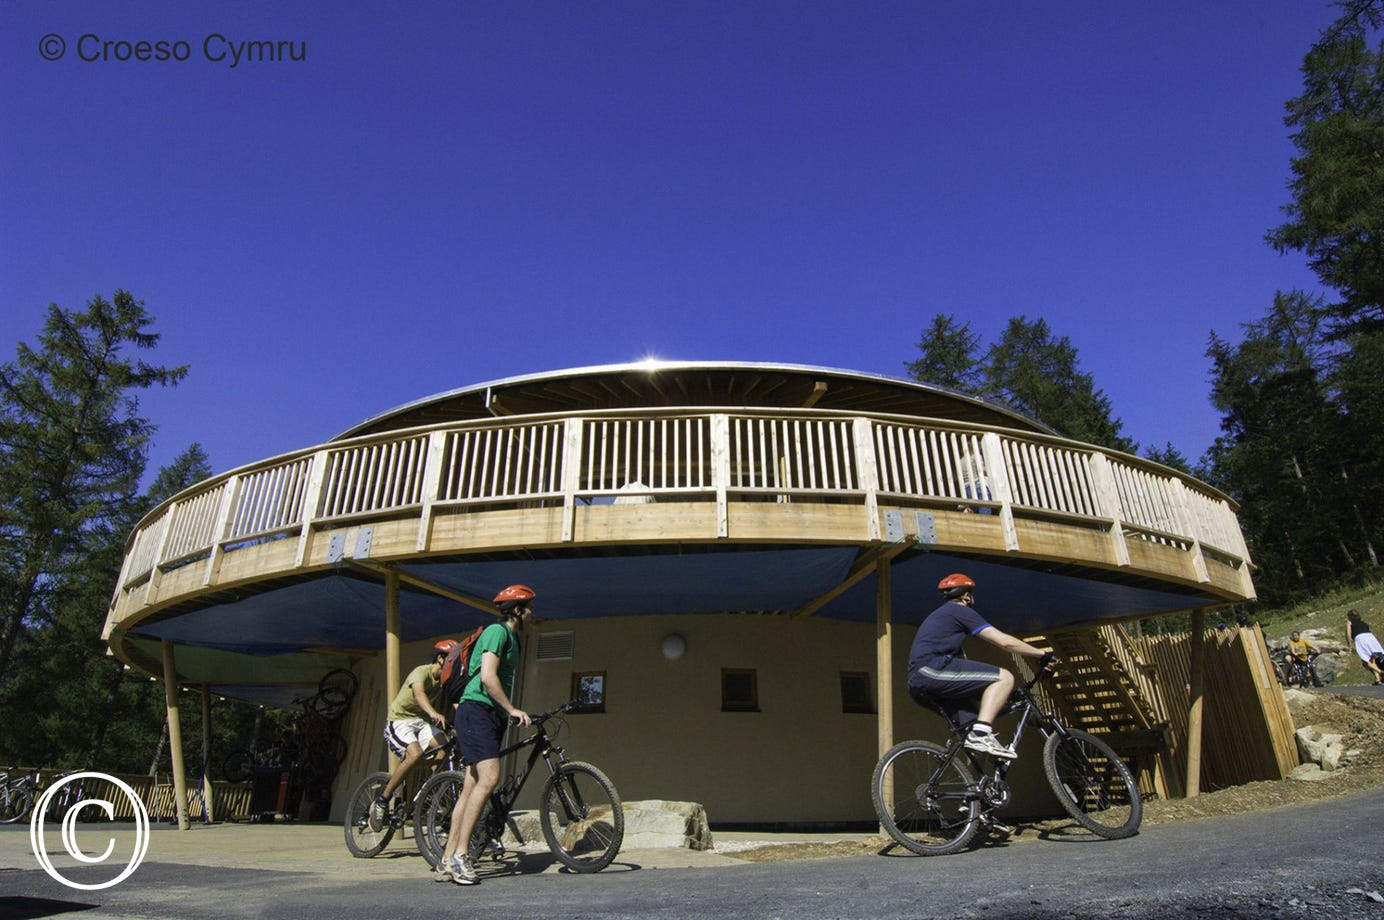 Coed-y-Brenin Mountain Biking Centre – Suitable routes for all ages.